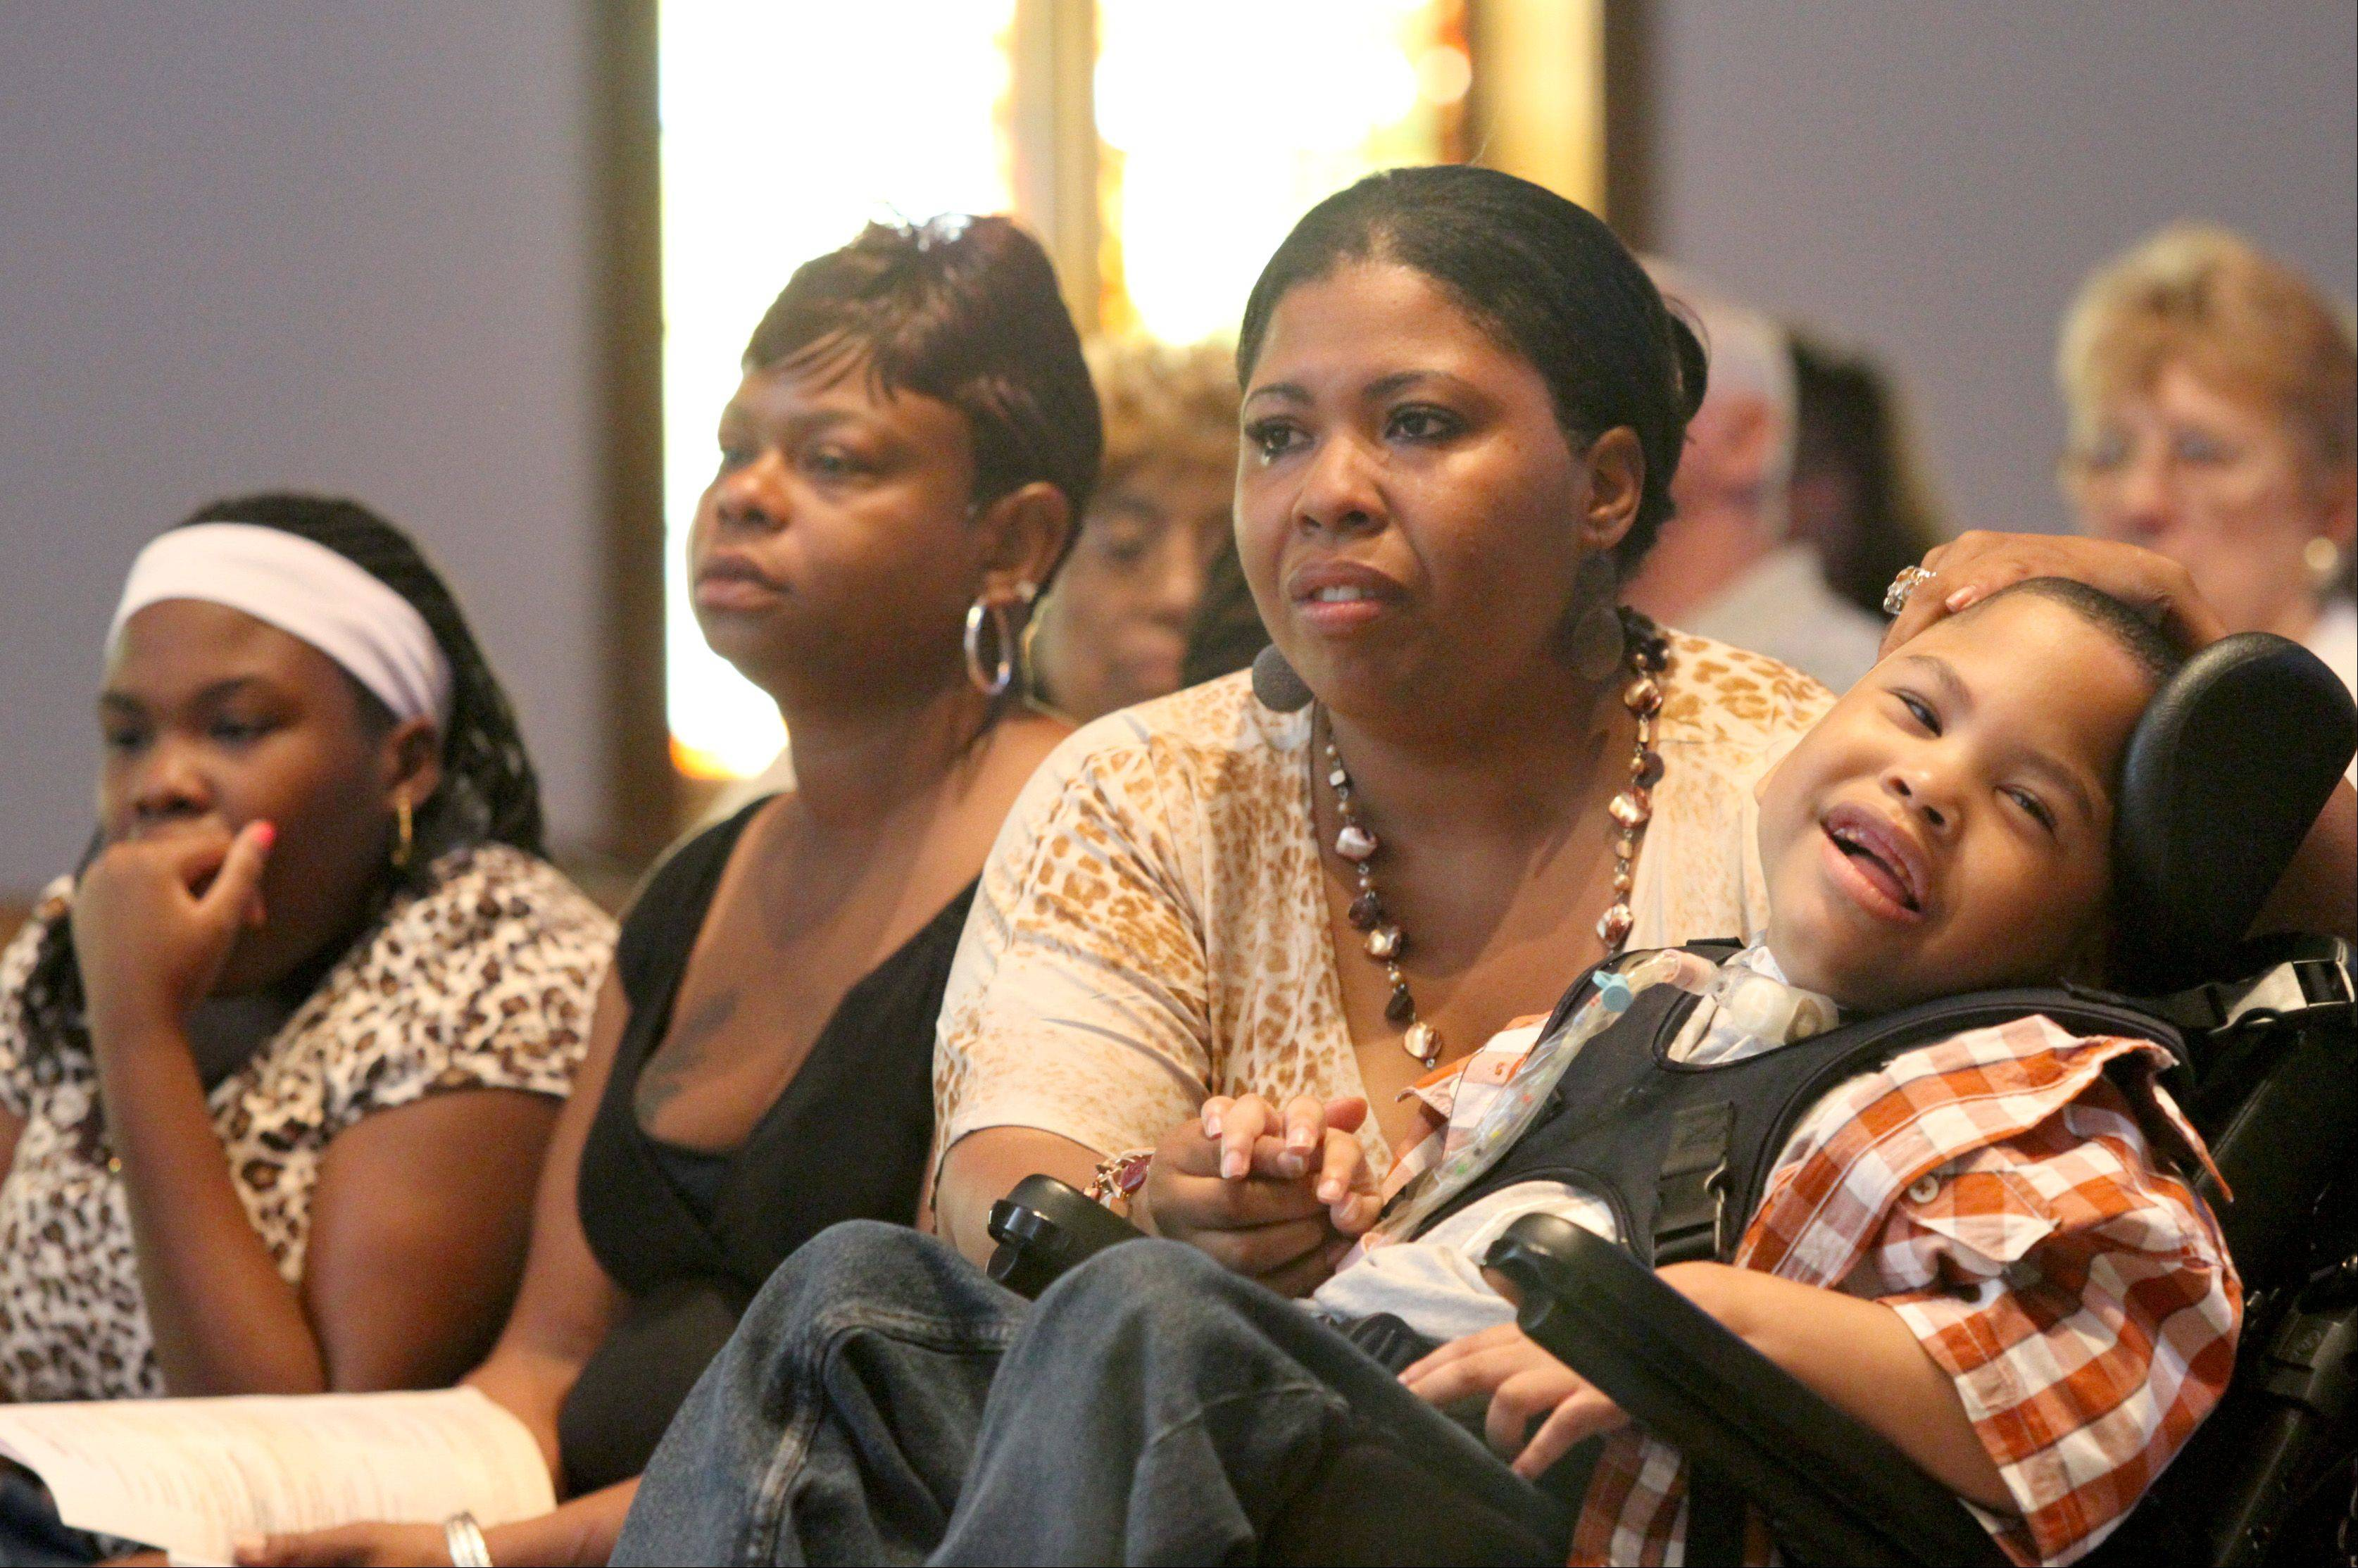 Cabri Moore, 11, from left, Beatrice Kimbrough, Debrina Moore and Christian Moore, 5, watch a Celtic dance performance during a benefit concert Sunday at the Lutheran Church of the Master in Carol Stream. The benefit concert was held to help the single mother care for her children including Christian, who has cerebral palsy.